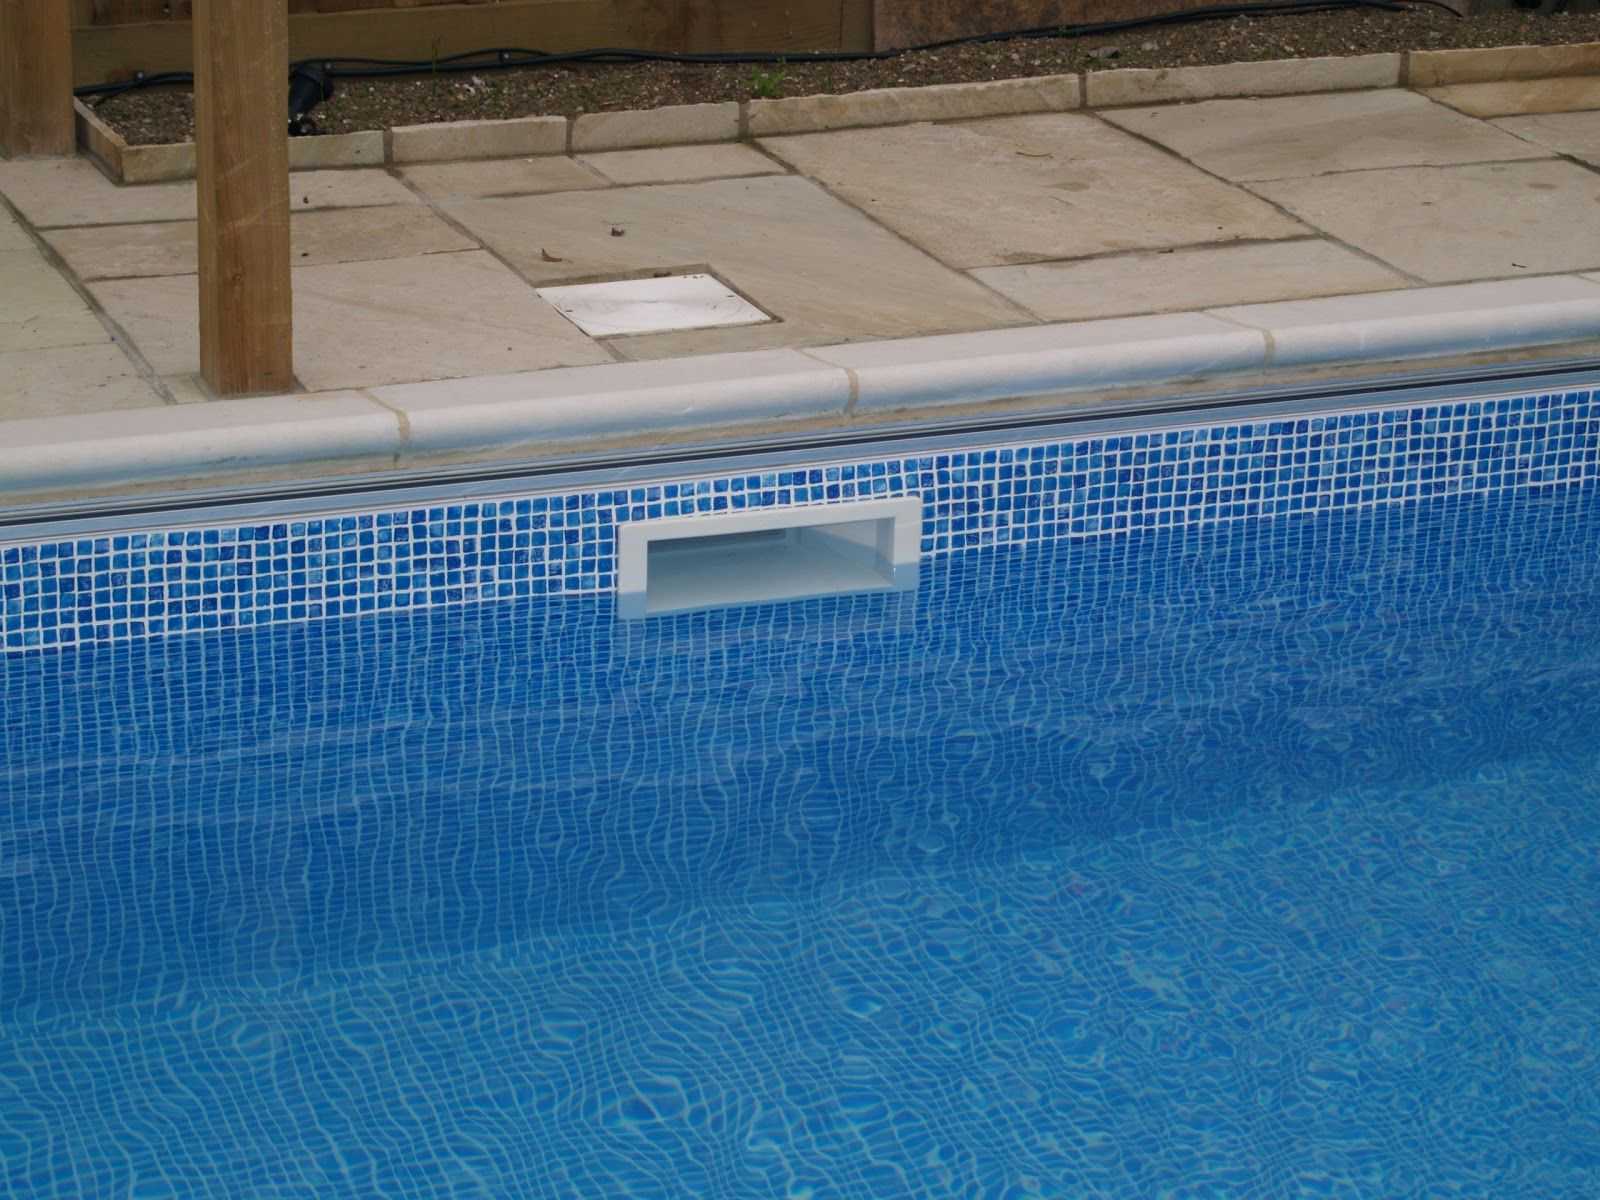 Best Swimming Pool Skimmers Pool skimmers, Cool swimming